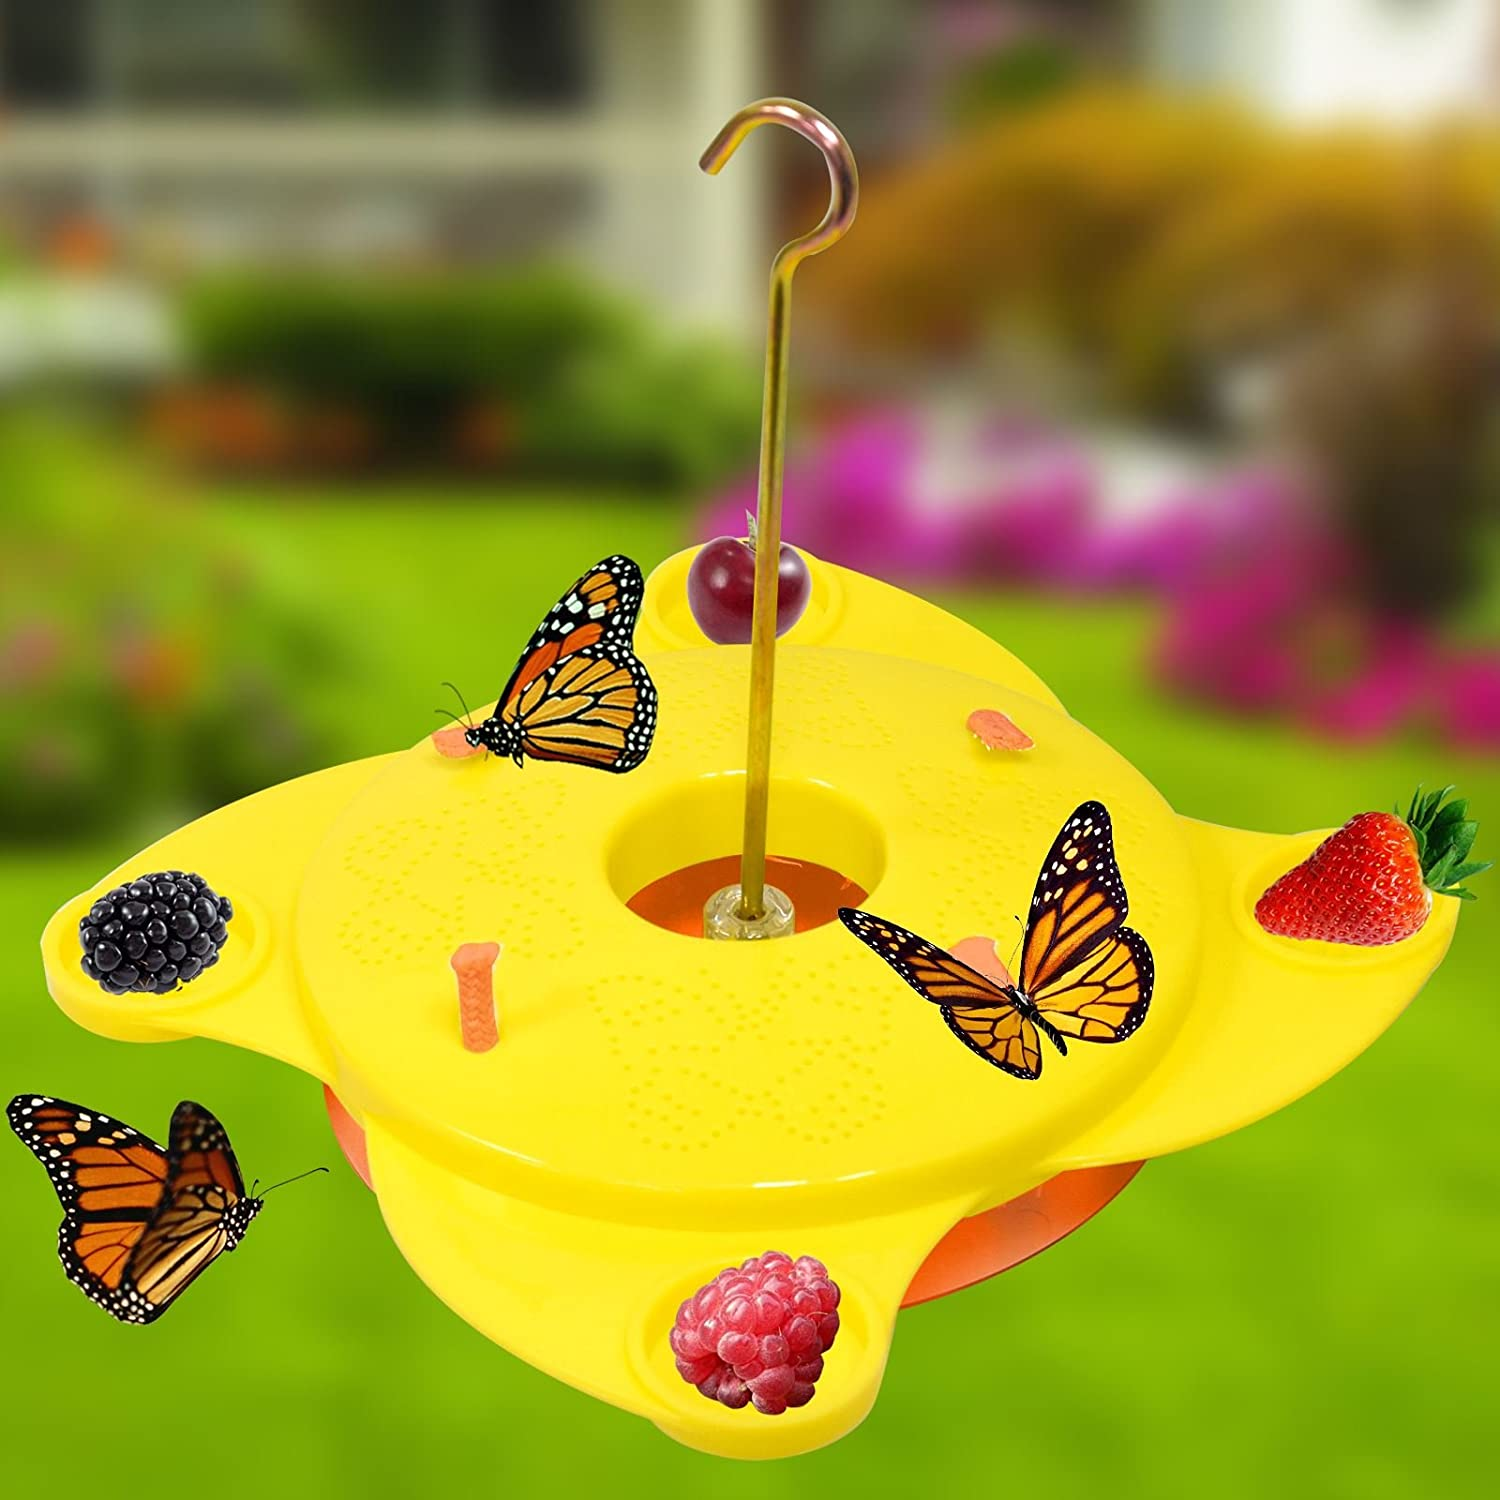 Garden Butterfly Feeder Station Brightly Coloured Yellow Insect Feeding Platform Attract Nectar Blooming Flowers ASAB